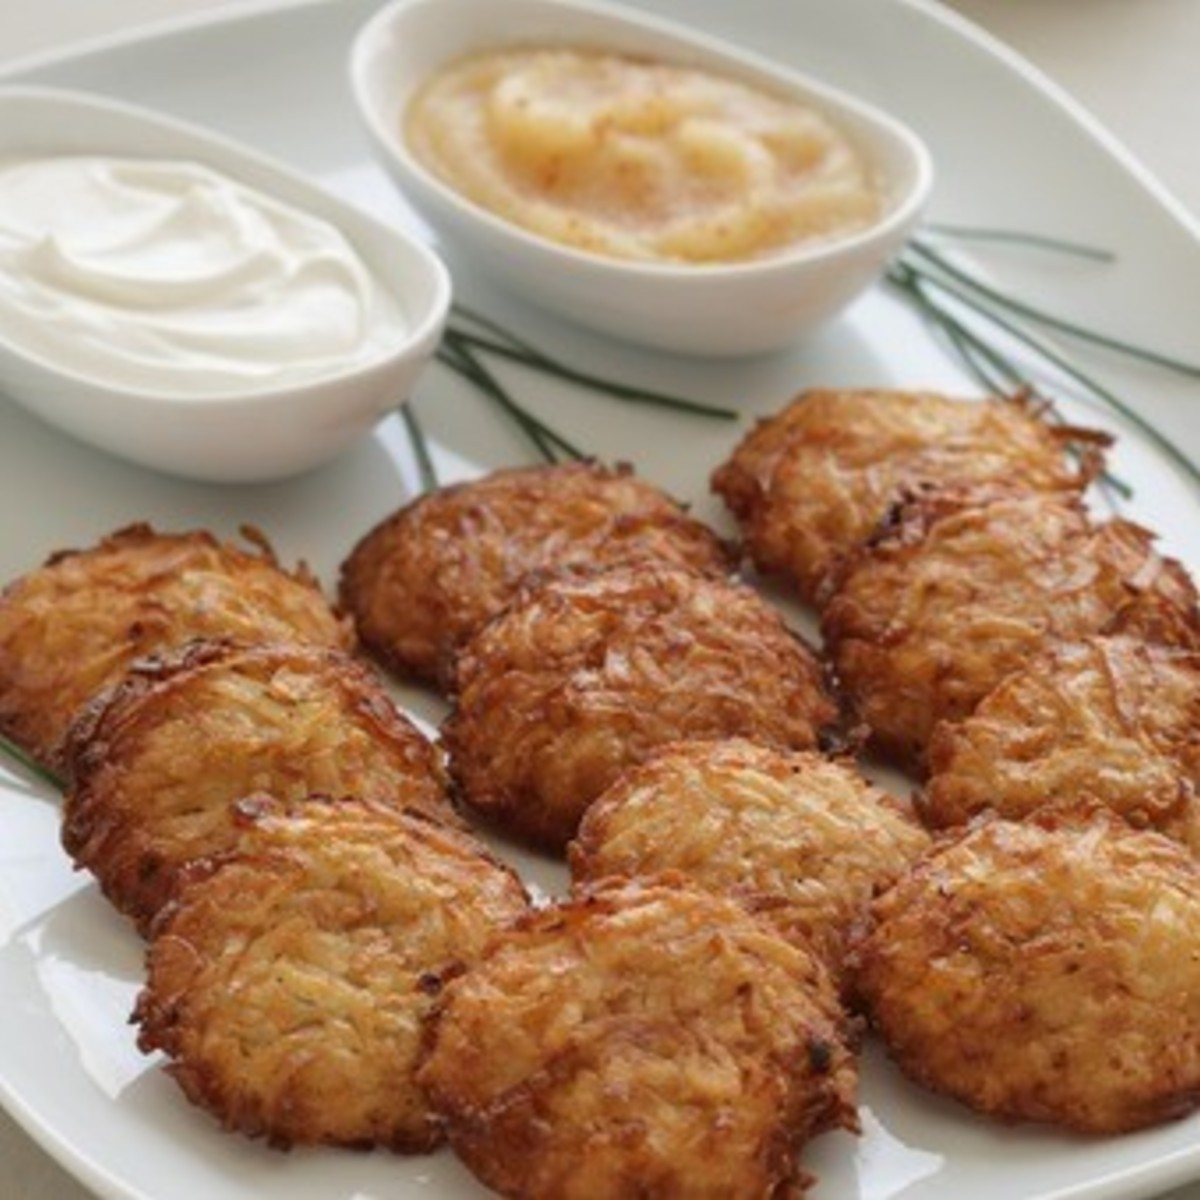 24-large-latkes-and-1-jar-of-lindas-gourmet-applesauce.4c6ff12ebd63d0665ec680ecca37cc12.jpg